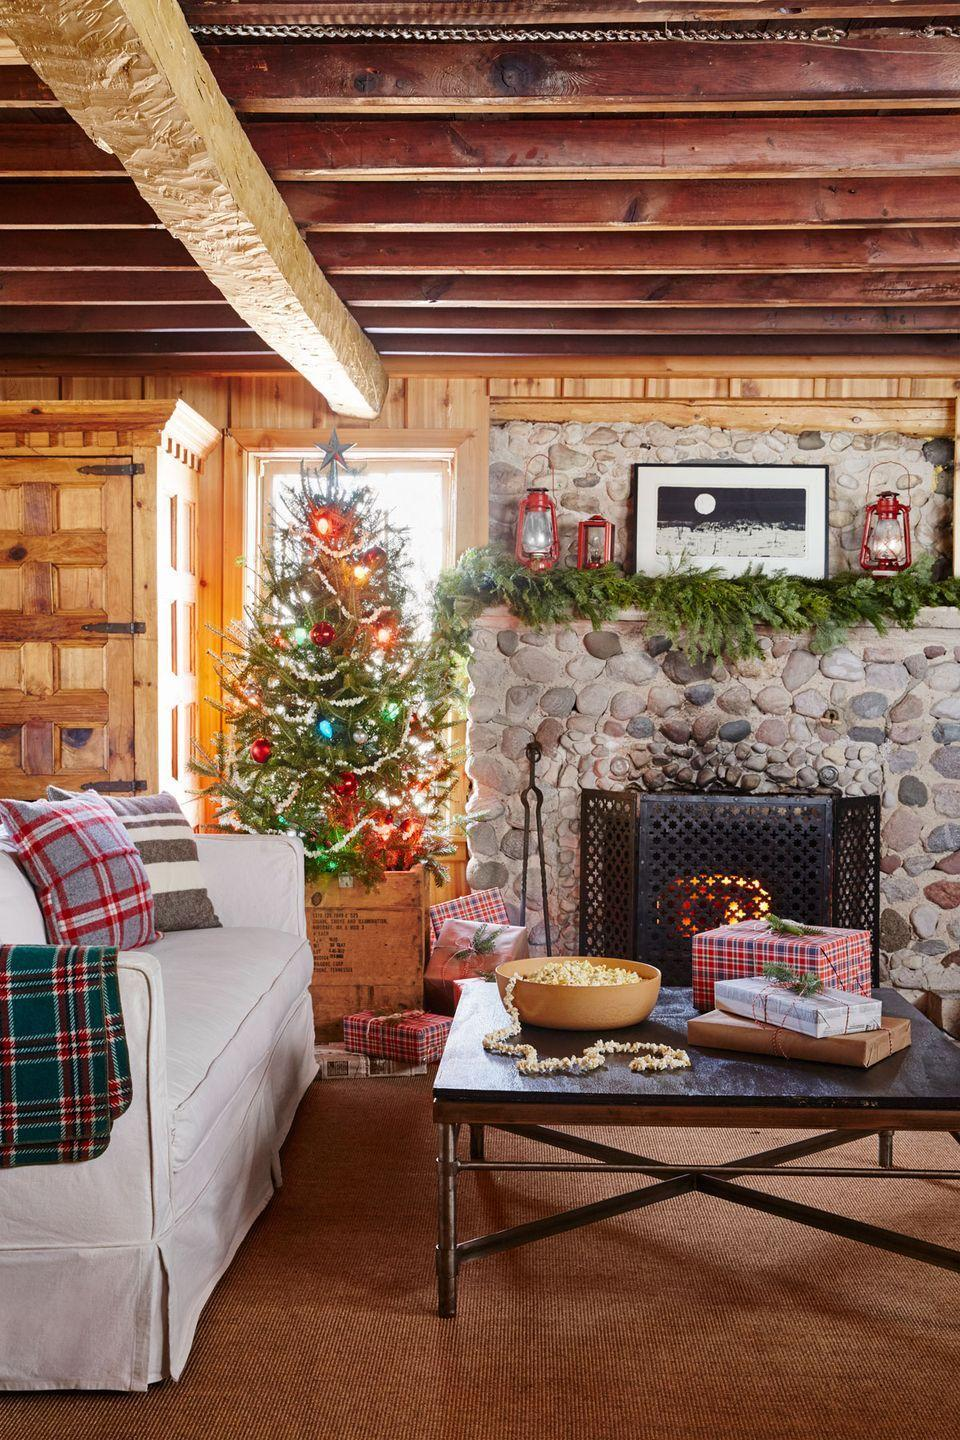 """<p>For the tree in this <a href=""""https://www.countryliving.com/home-design/house-tours/g2779/patrick-mcguire-cozy-christmas-cabin/"""" rel=""""nofollow noopener"""" target=""""_blank"""" data-ylk=""""slk:cozy Christmas cabin"""" class=""""link rapid-noclick-resp"""">cozy Christmas cabin</a>, a simple popcorn garland, glass ball ornaments, and a wooden crate in lieu of a tree skirt reinforce the home's-stuck-in-time vibe. The fir garland above the mantel and solo sprigs of pine found in vases throughout the house also add an organic element.</p><p><a class=""""link rapid-noclick-resp"""" href=""""https://go.redirectingat.com?id=74968X1596630&url=https%3A%2F%2Fwww.etsy.com%2Fmarket%2Fwooden_crates&sref=https%3A%2F%2Fwww.countryliving.com%2Fhome-design%2Fdecorating-ideas%2Fadvice%2Fg1247%2Fholiday-decorating-1208%2F"""" rel=""""nofollow noopener"""" target=""""_blank"""" data-ylk=""""slk:SHOP WOODEN CRATES"""">SHOP WOODEN CRATES</a></p>"""